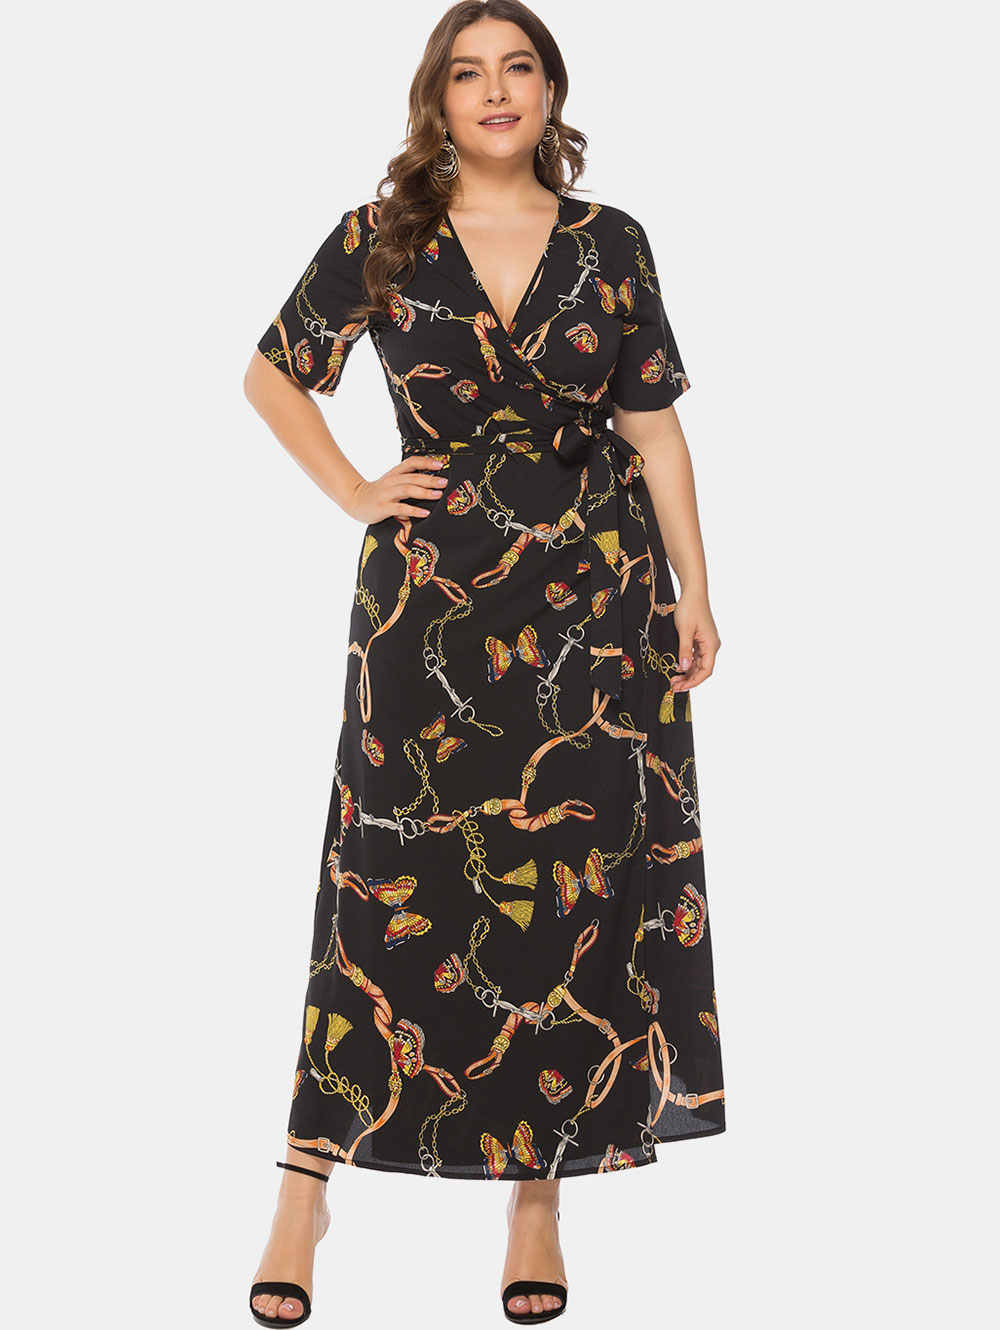 Wipalo Women Plus Size 6XL Butterfly Printed Wrap Maxi Dress Casual Summer  Ladies Dress Plunging Neck eba6c7e1a477